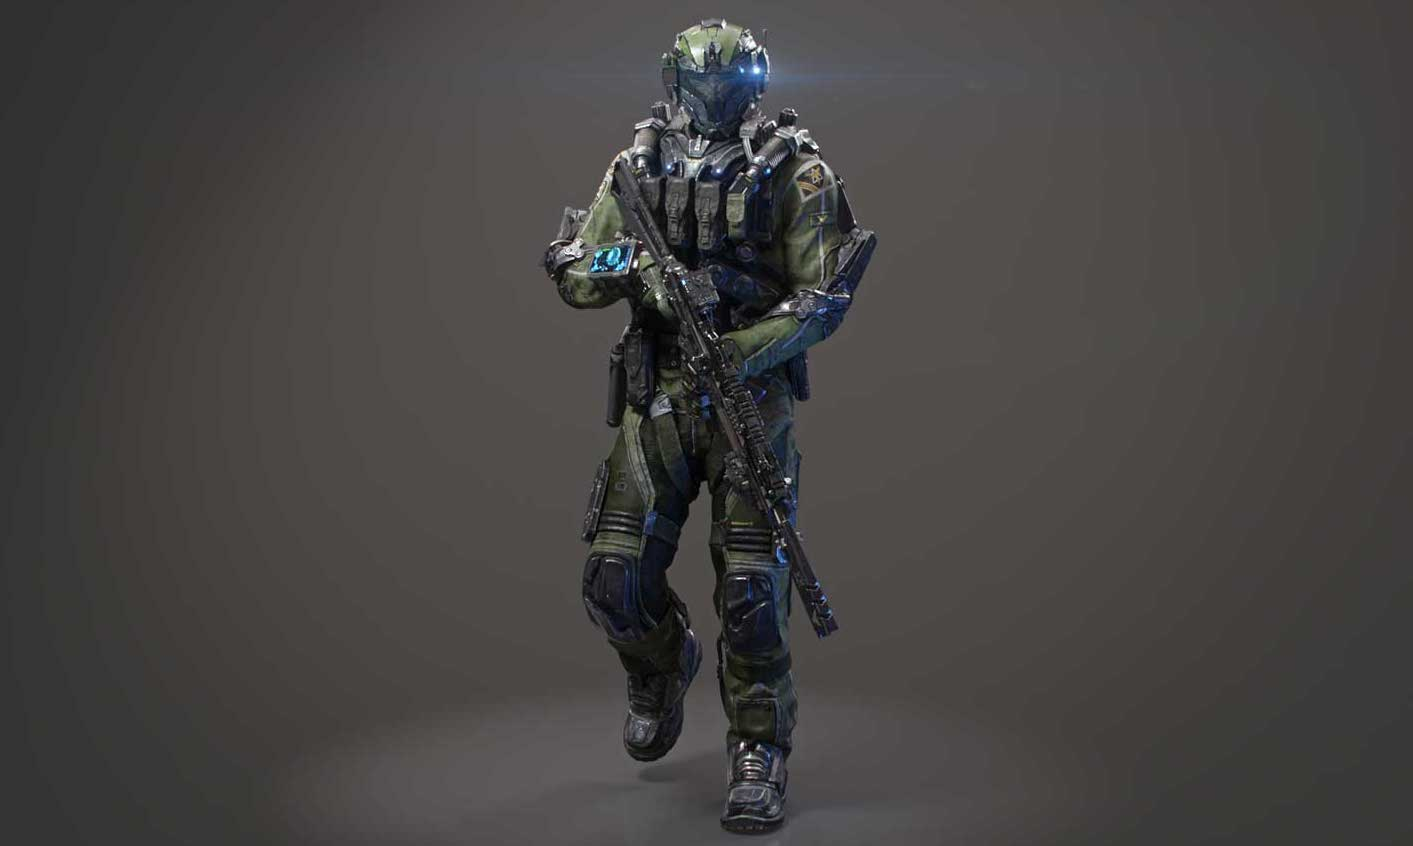 Animated AR Sci-Fi Soldier Character 5